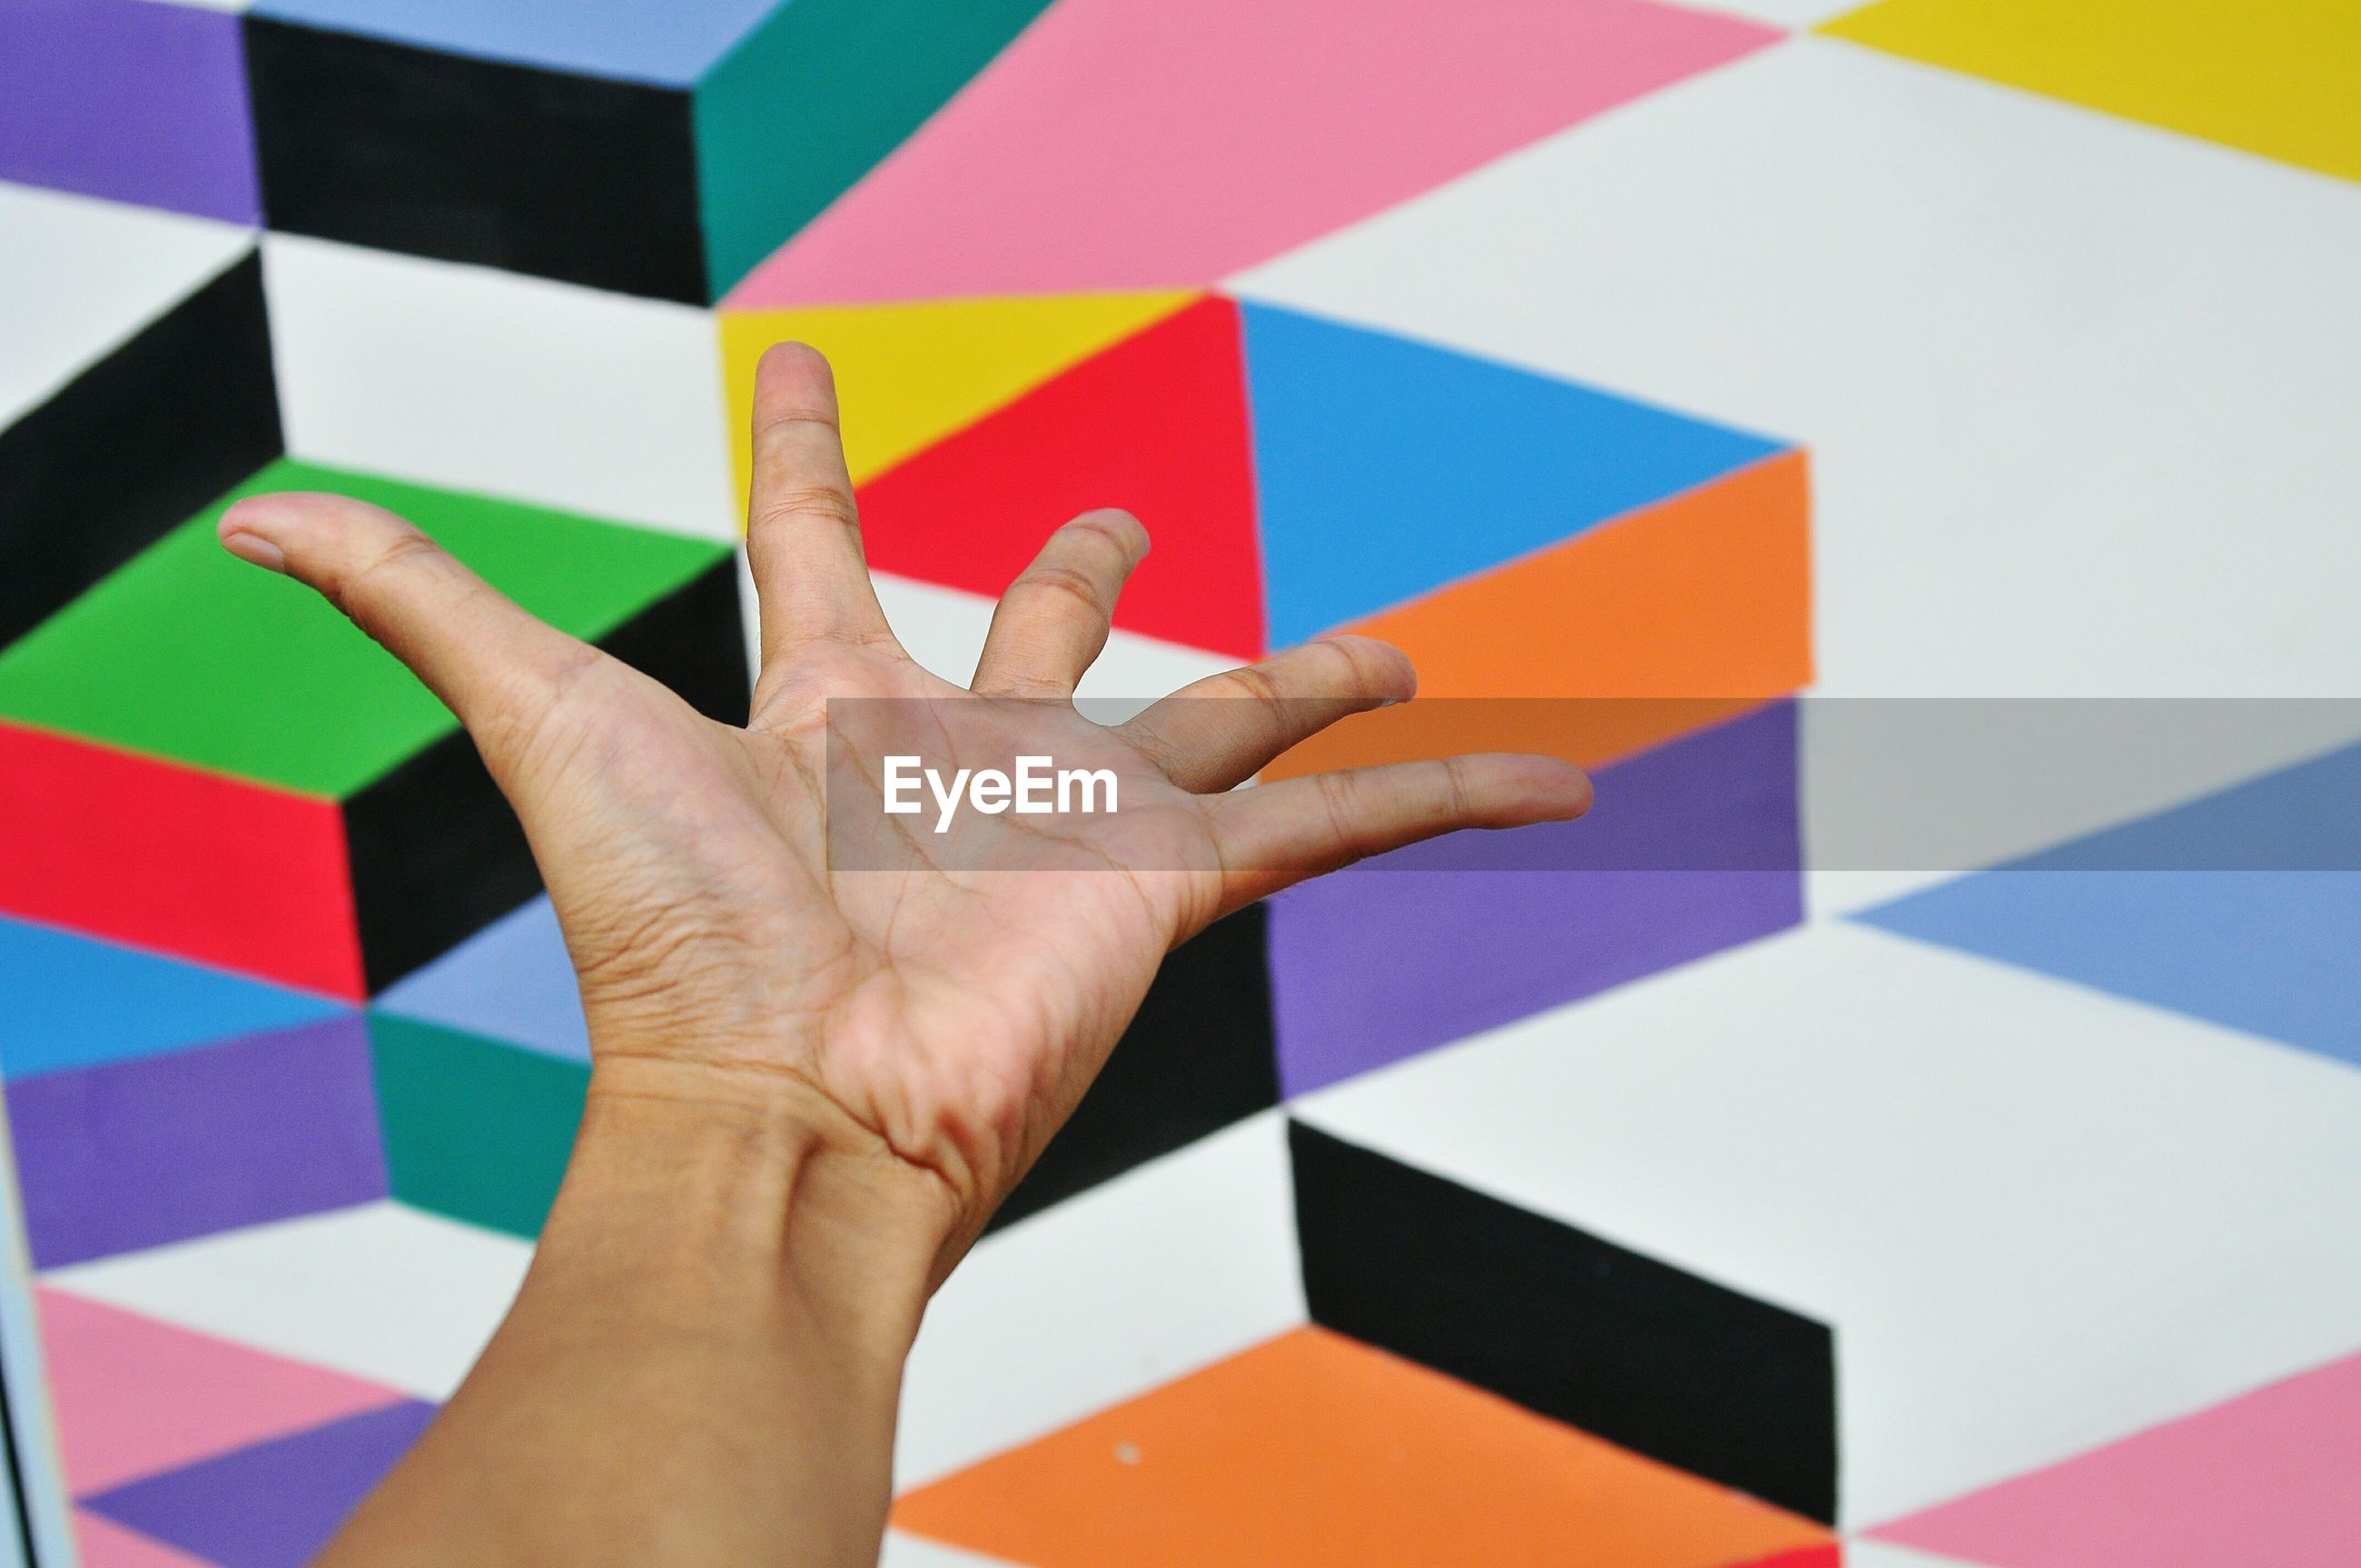 Cropped hand of person gesturing towards colorful wall